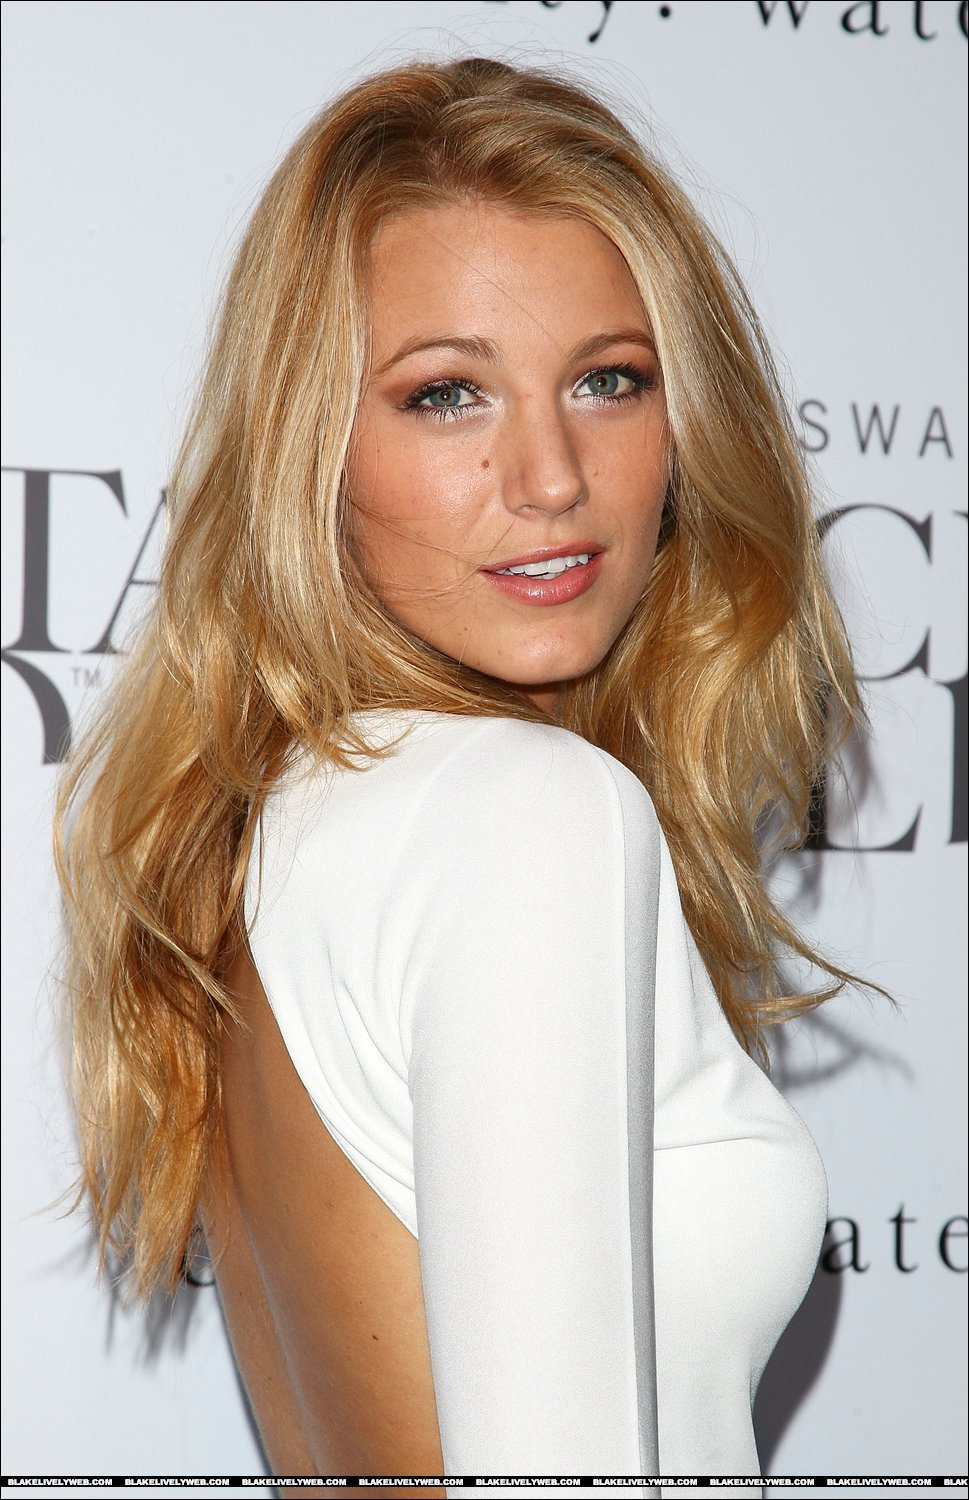 Blake Blake Lively Photo 6857581 Fanpop